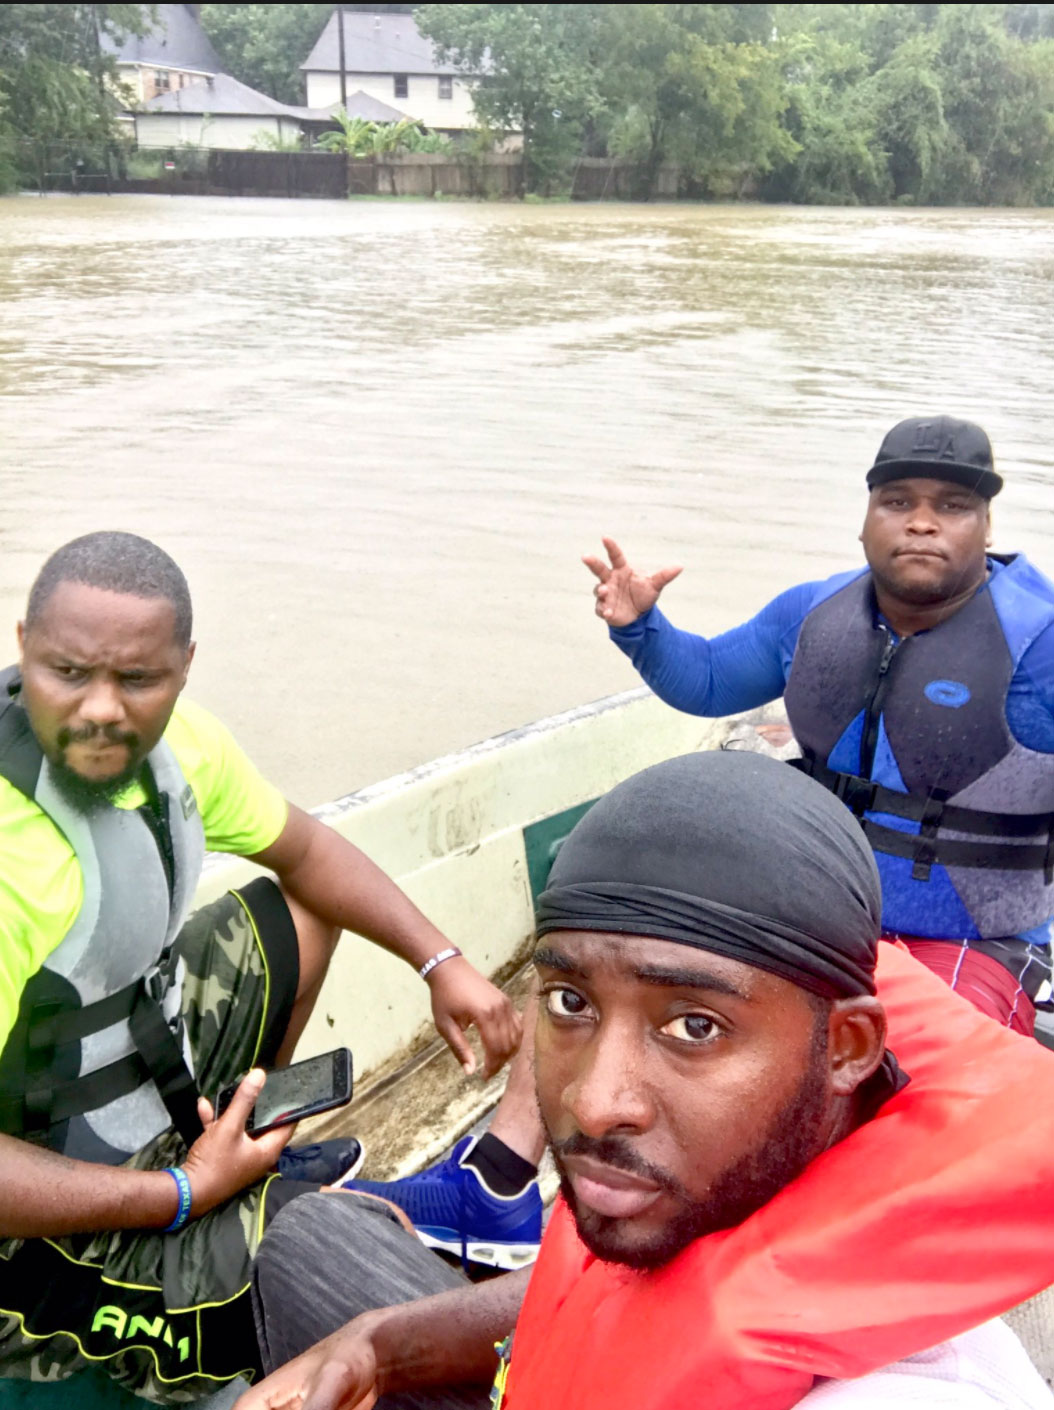 "<div class=""meta image-caption""><div class=""origin-logo origin-image none""><span>none</span></div><span class=""caption-text"">Citizen rescuers in Houston on Tuesday captured these photos. (Larry Brown/Twitter)</span></div>"